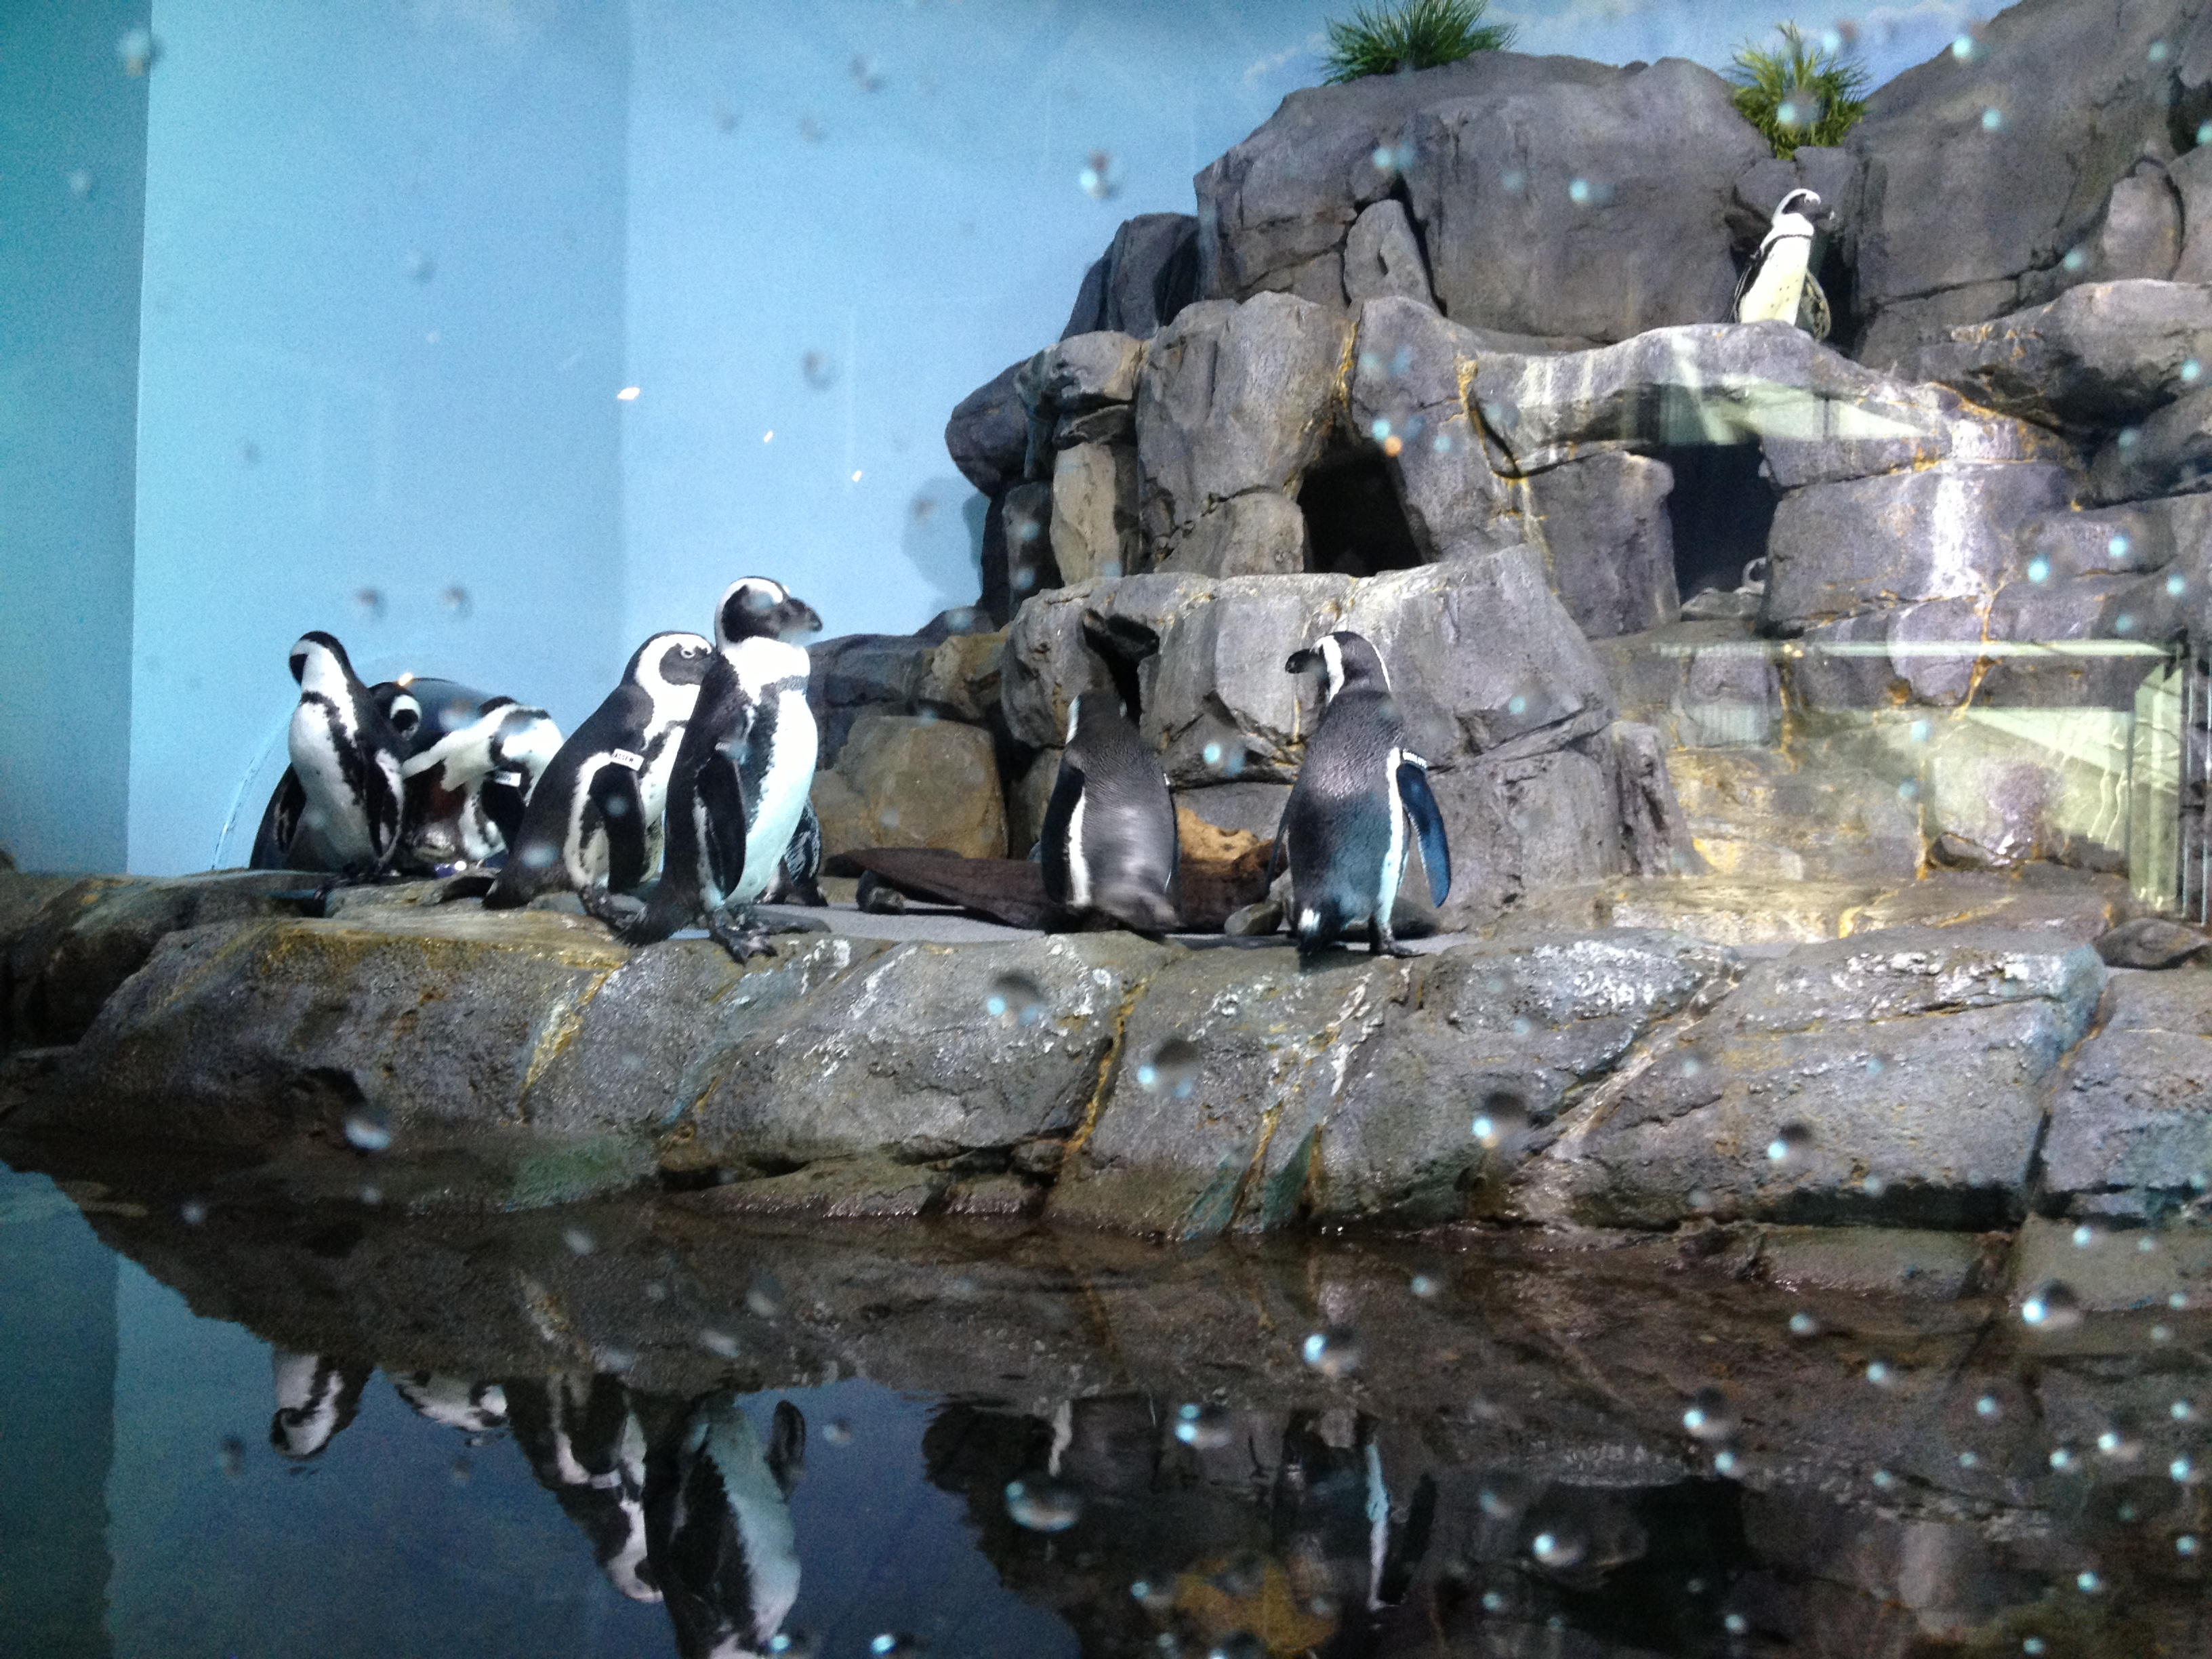 Penguins at the Monterey Bay Aquarium